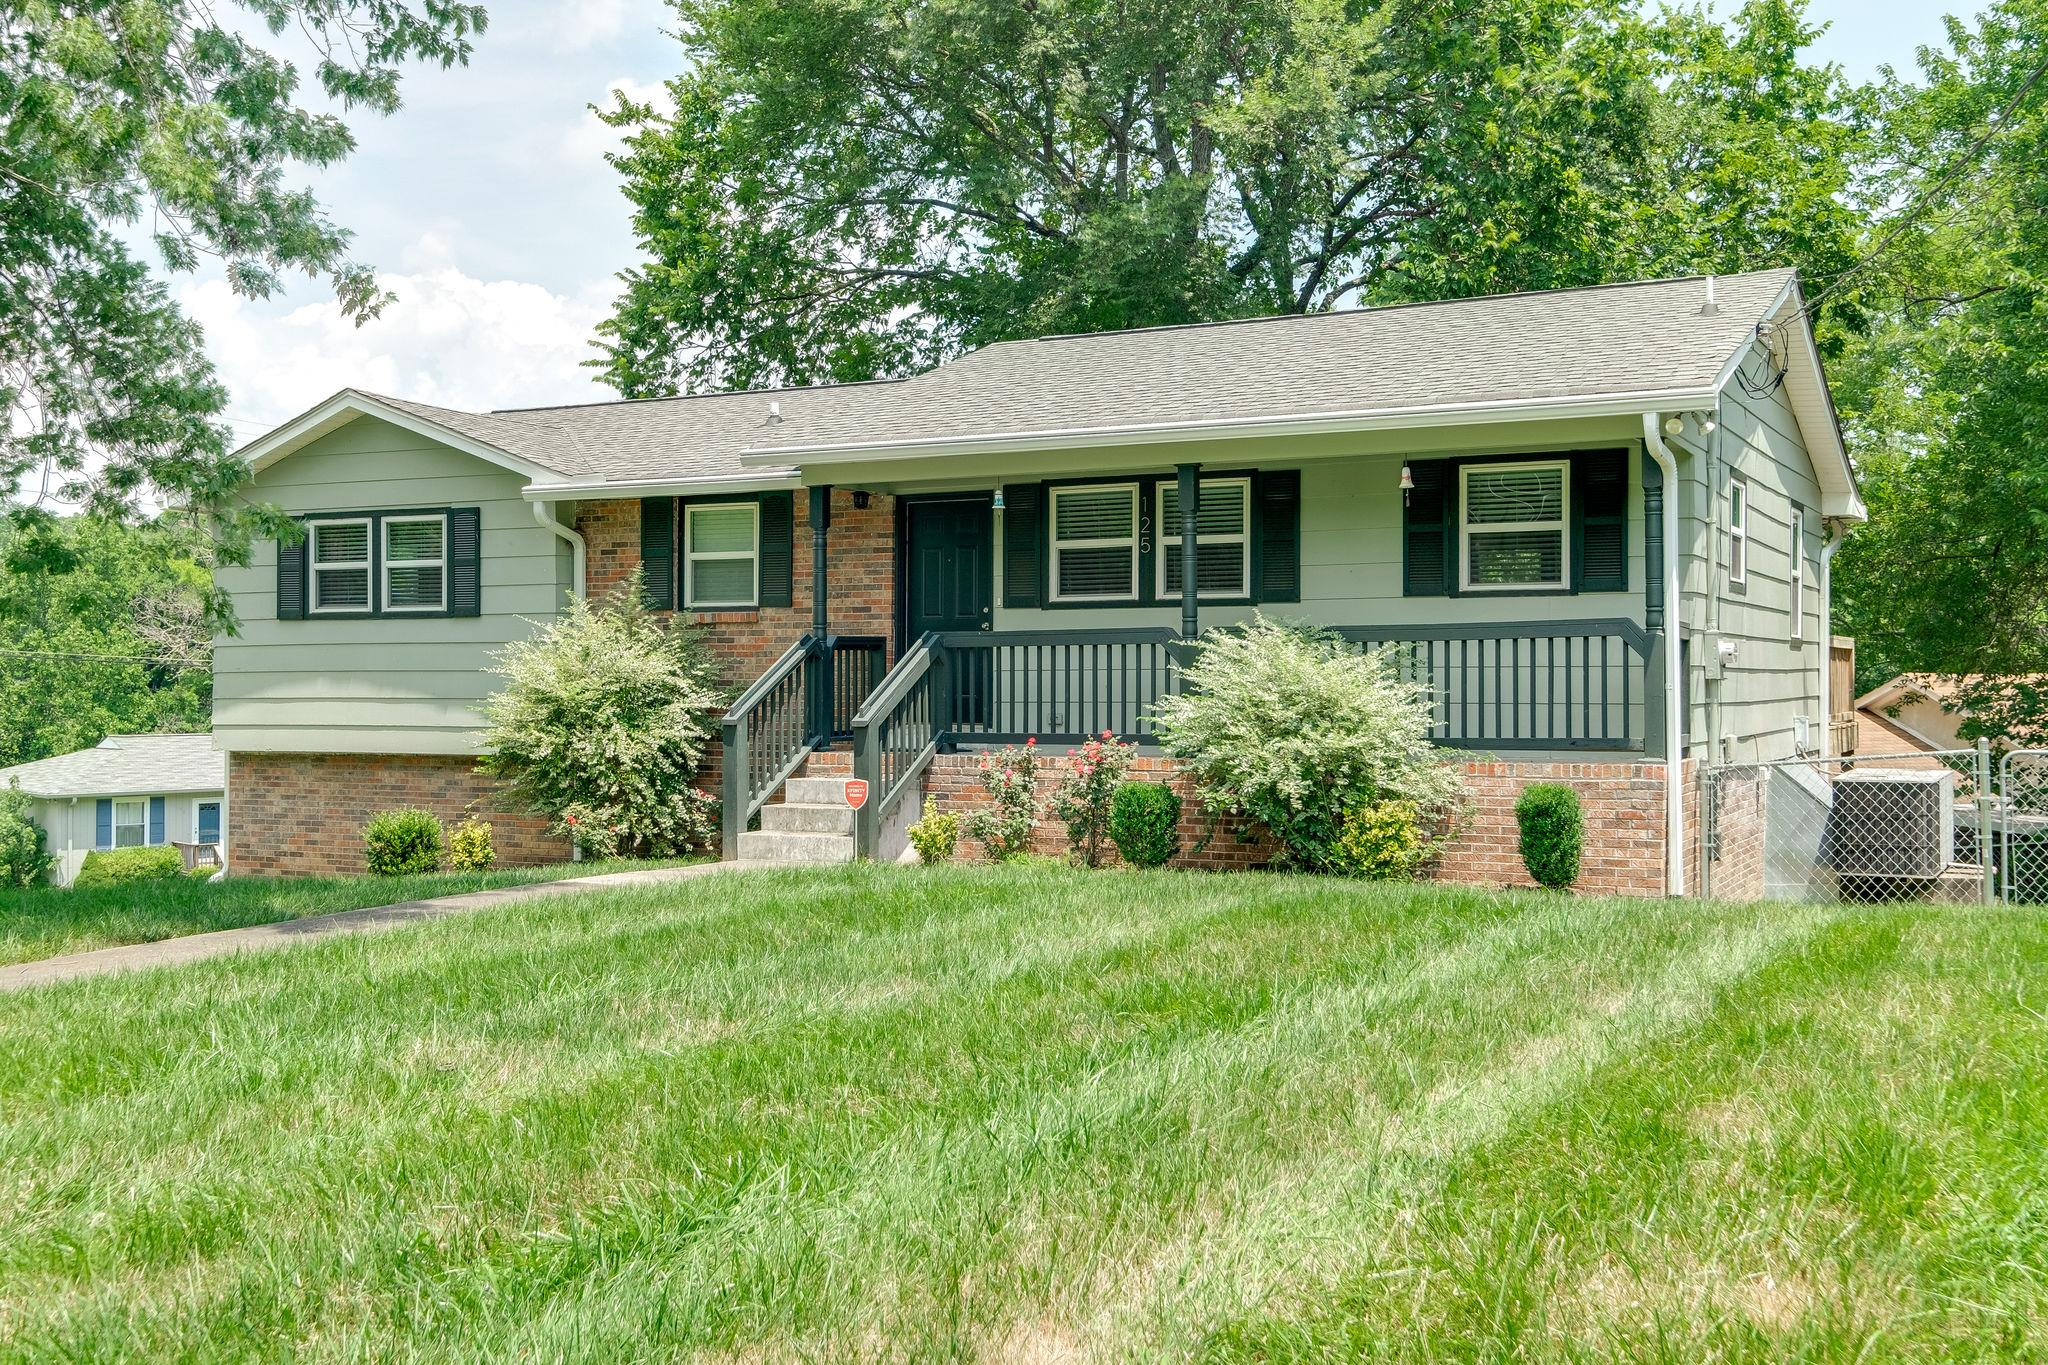 125 Cedarcrest Dr, Hendersonville in Sumner County County, TN 37075 Home for Sale